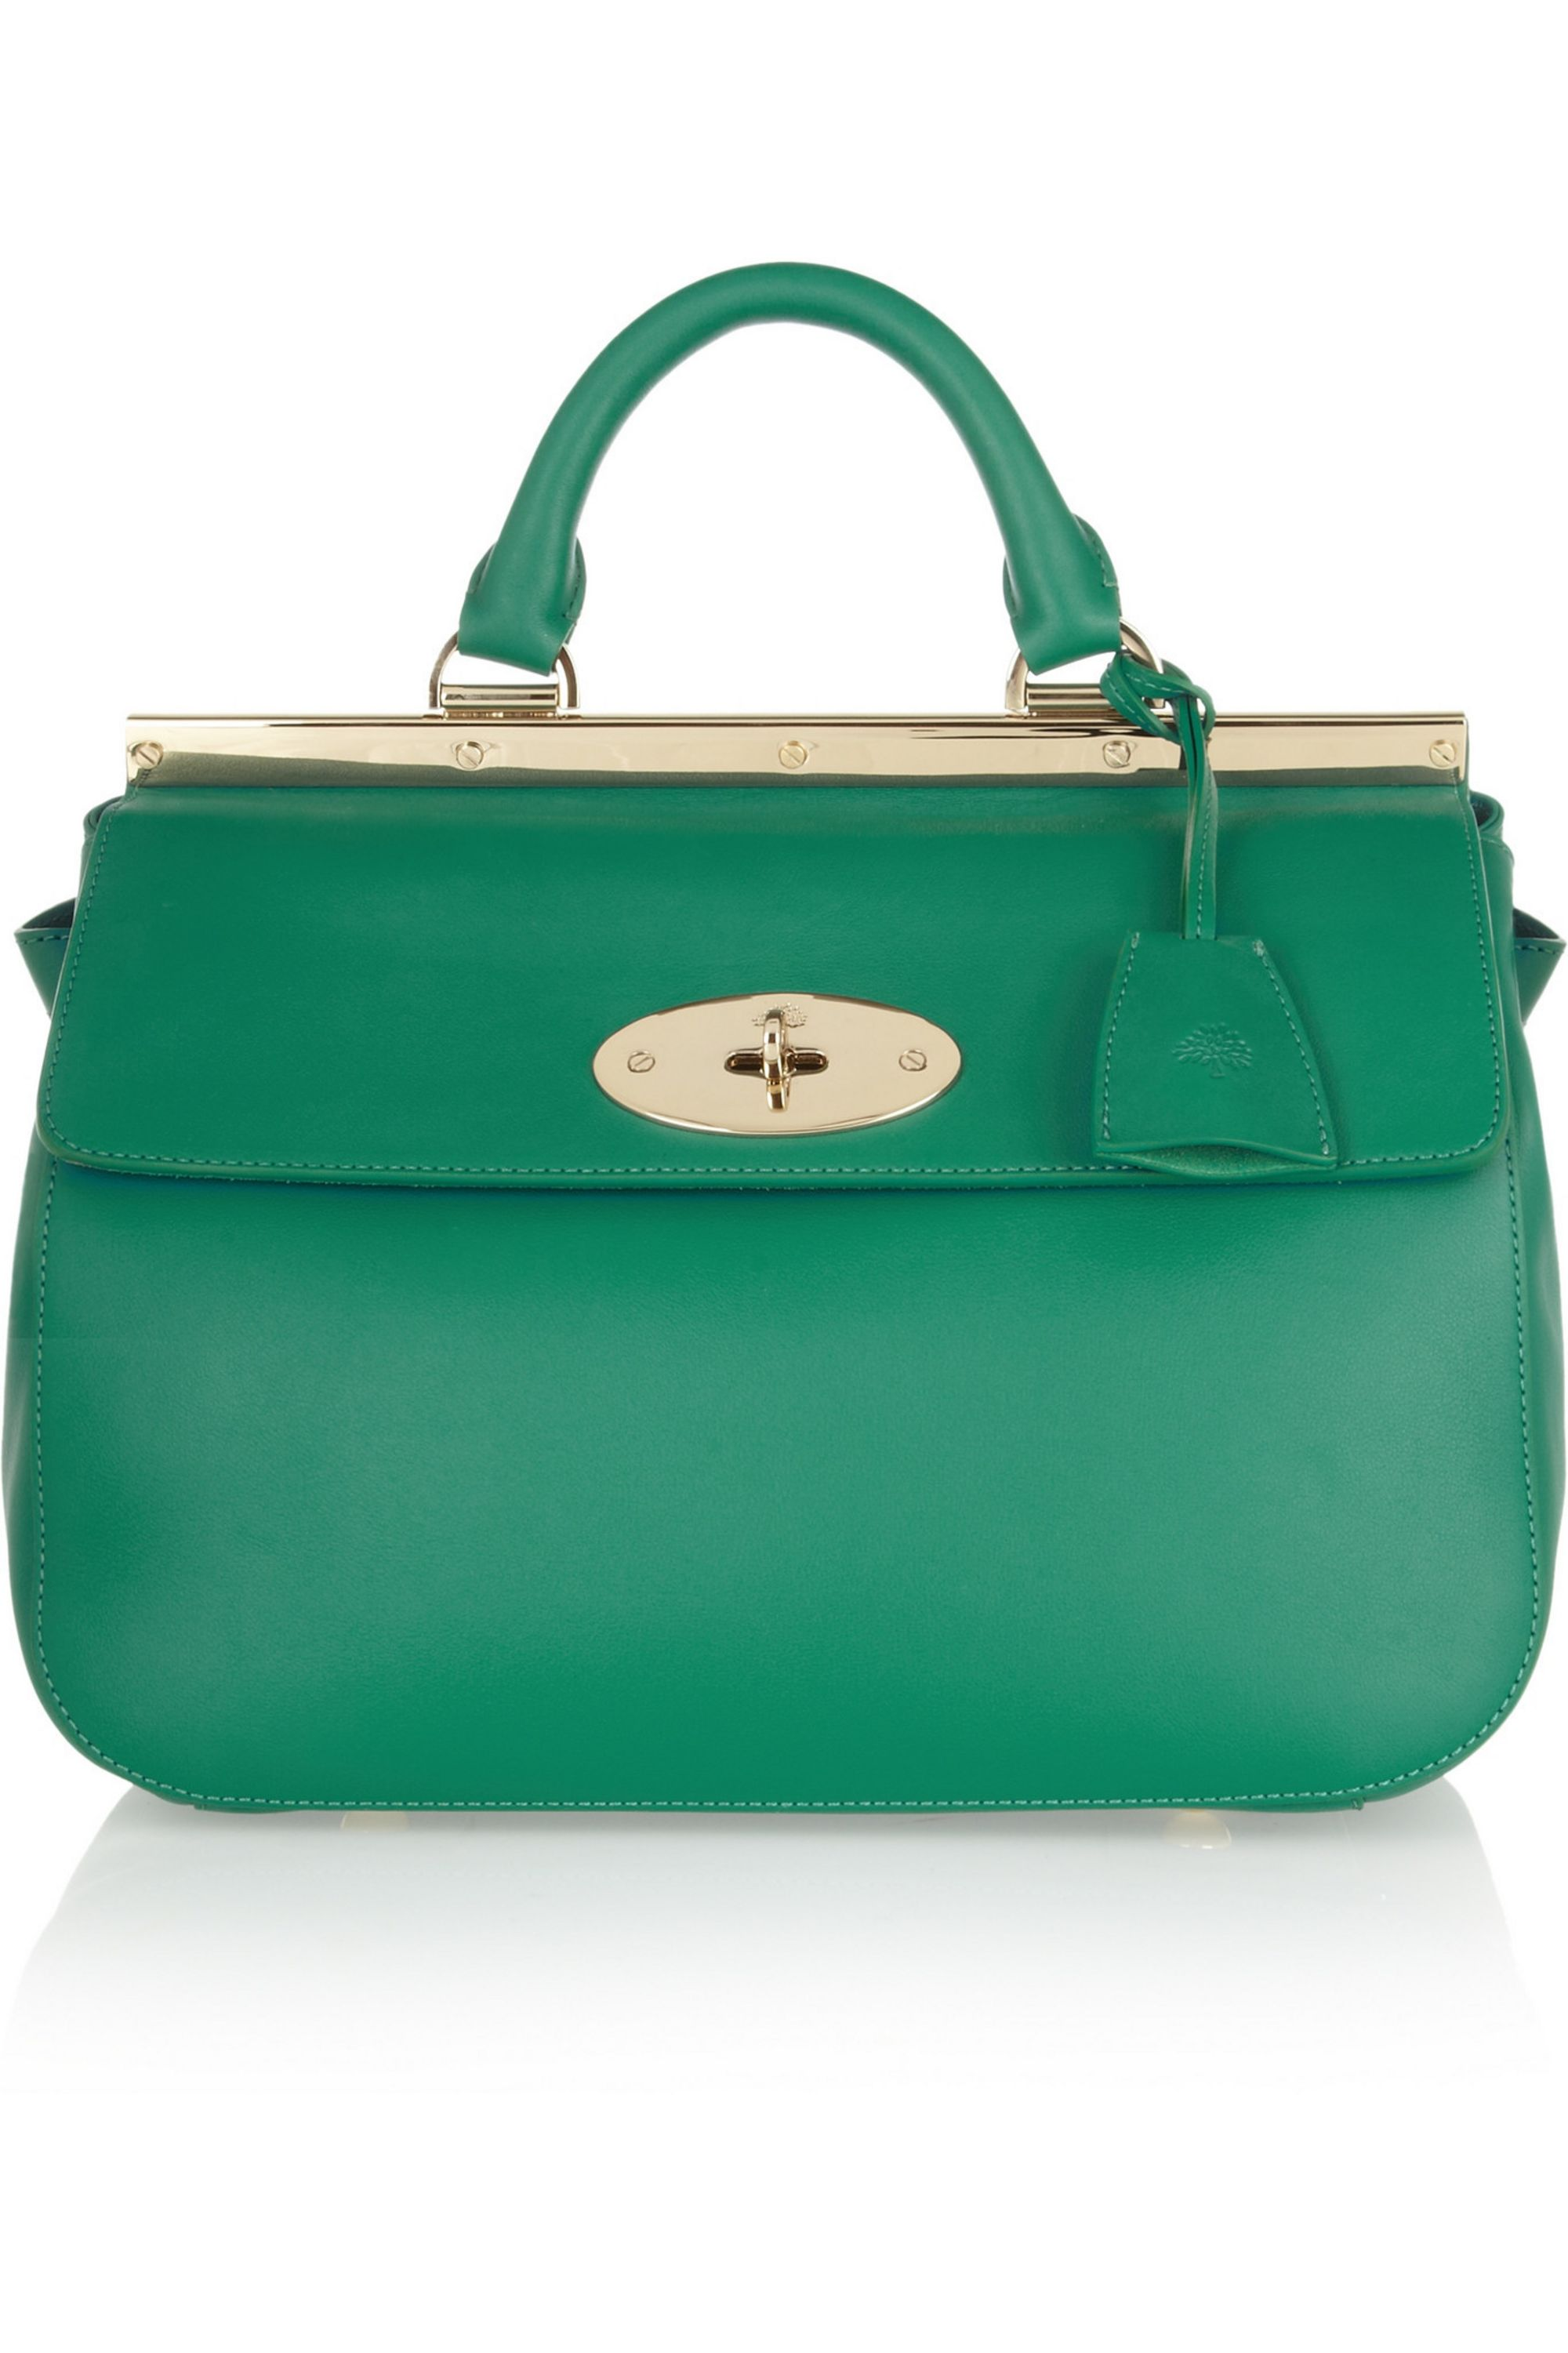 Mulberry Suffolk small leather tote